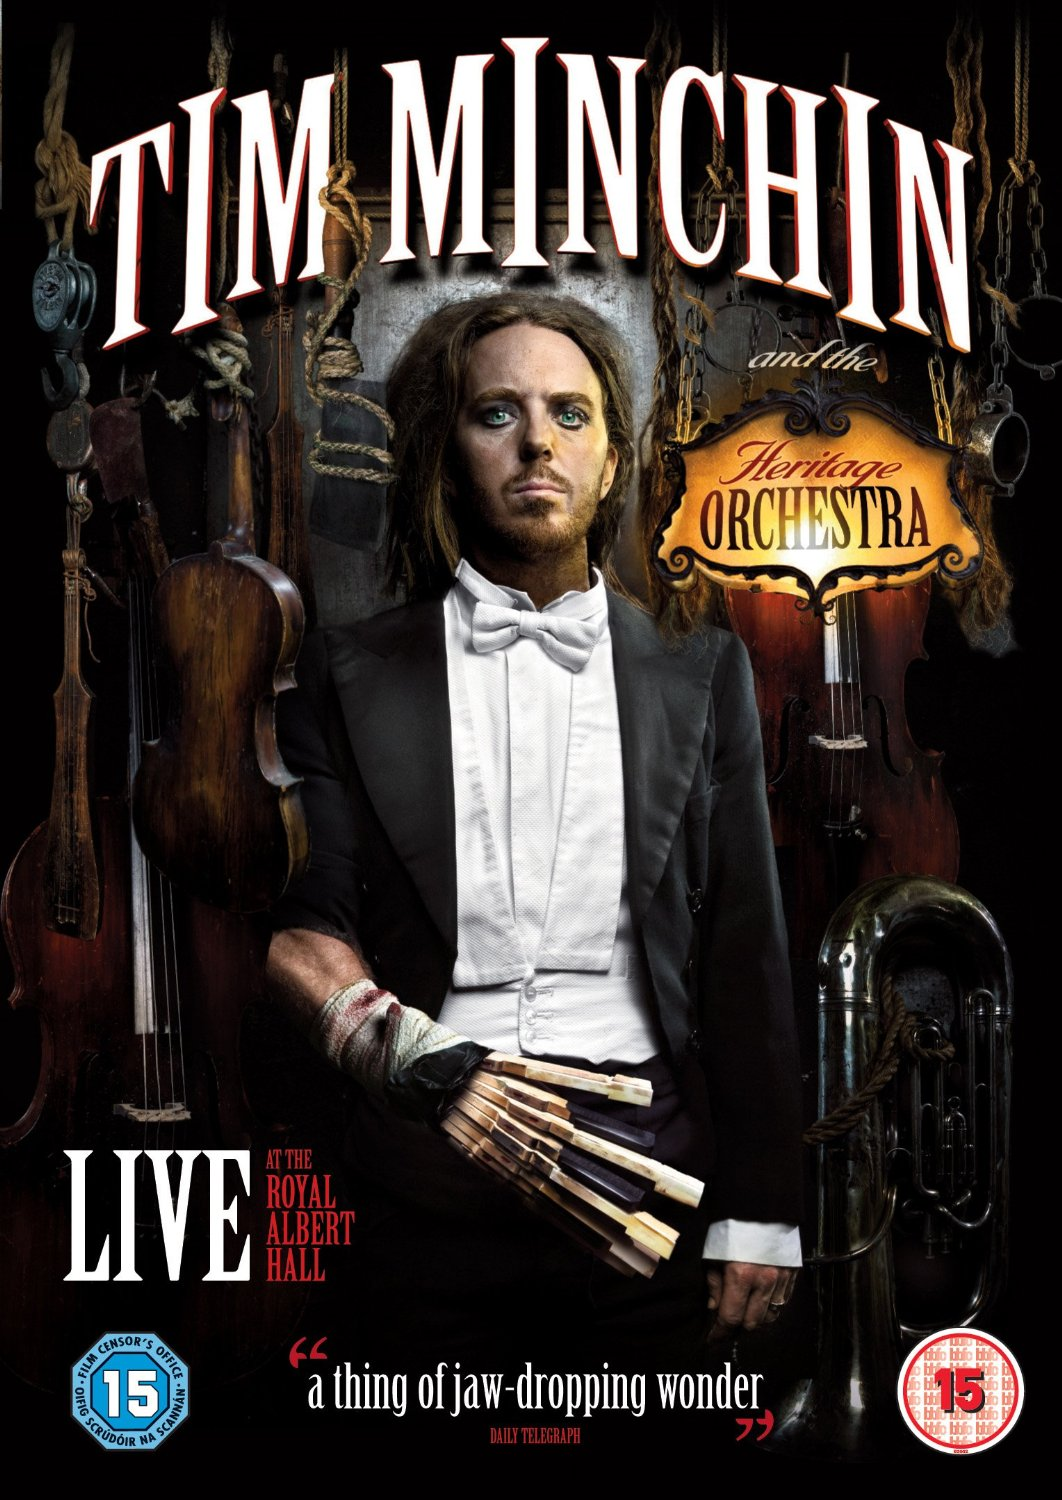 affiche du film Tim Minchin and the Heritage Orchestra